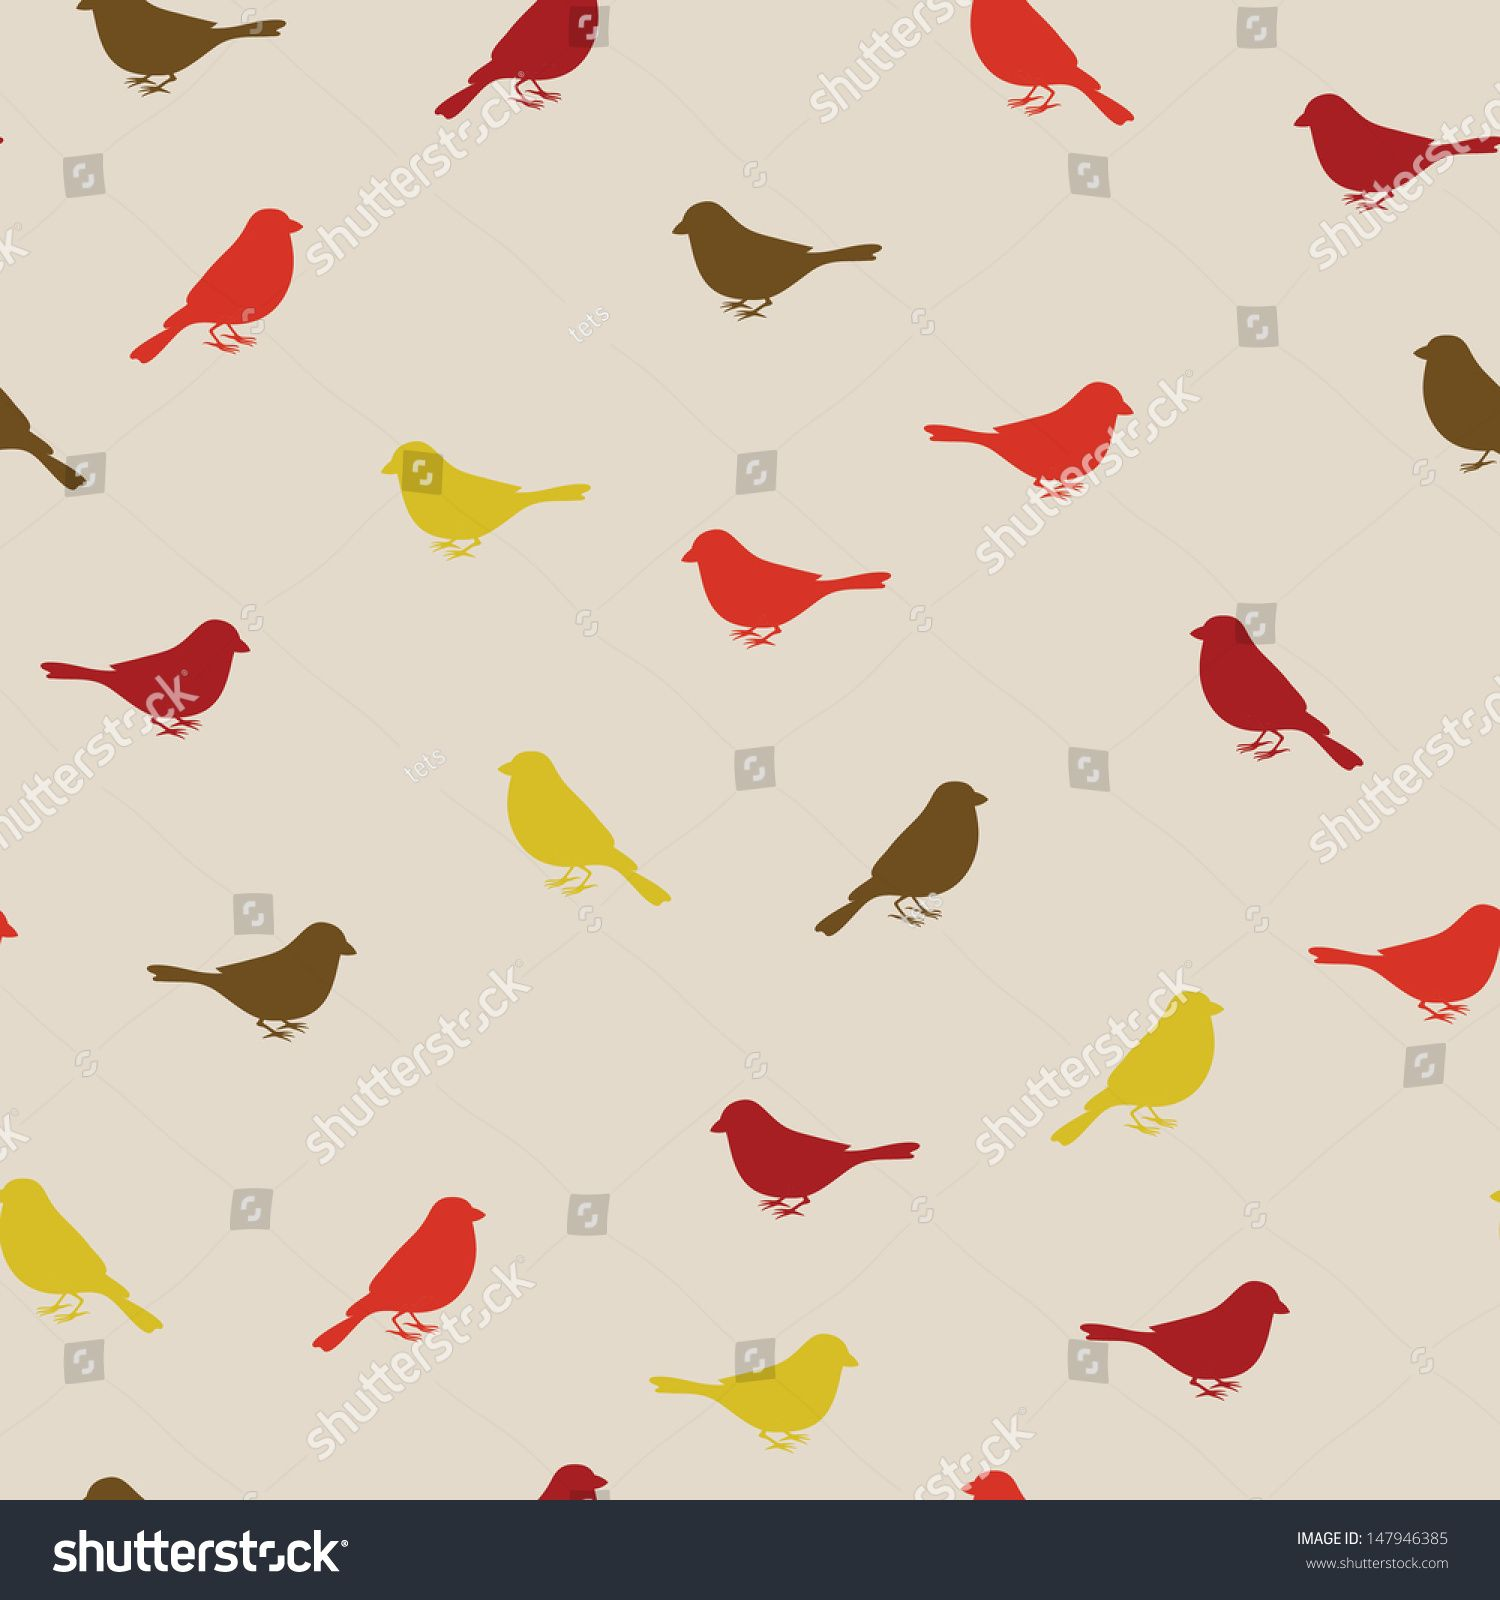 Birds seamless pattern. Colorful texture Texture, Image